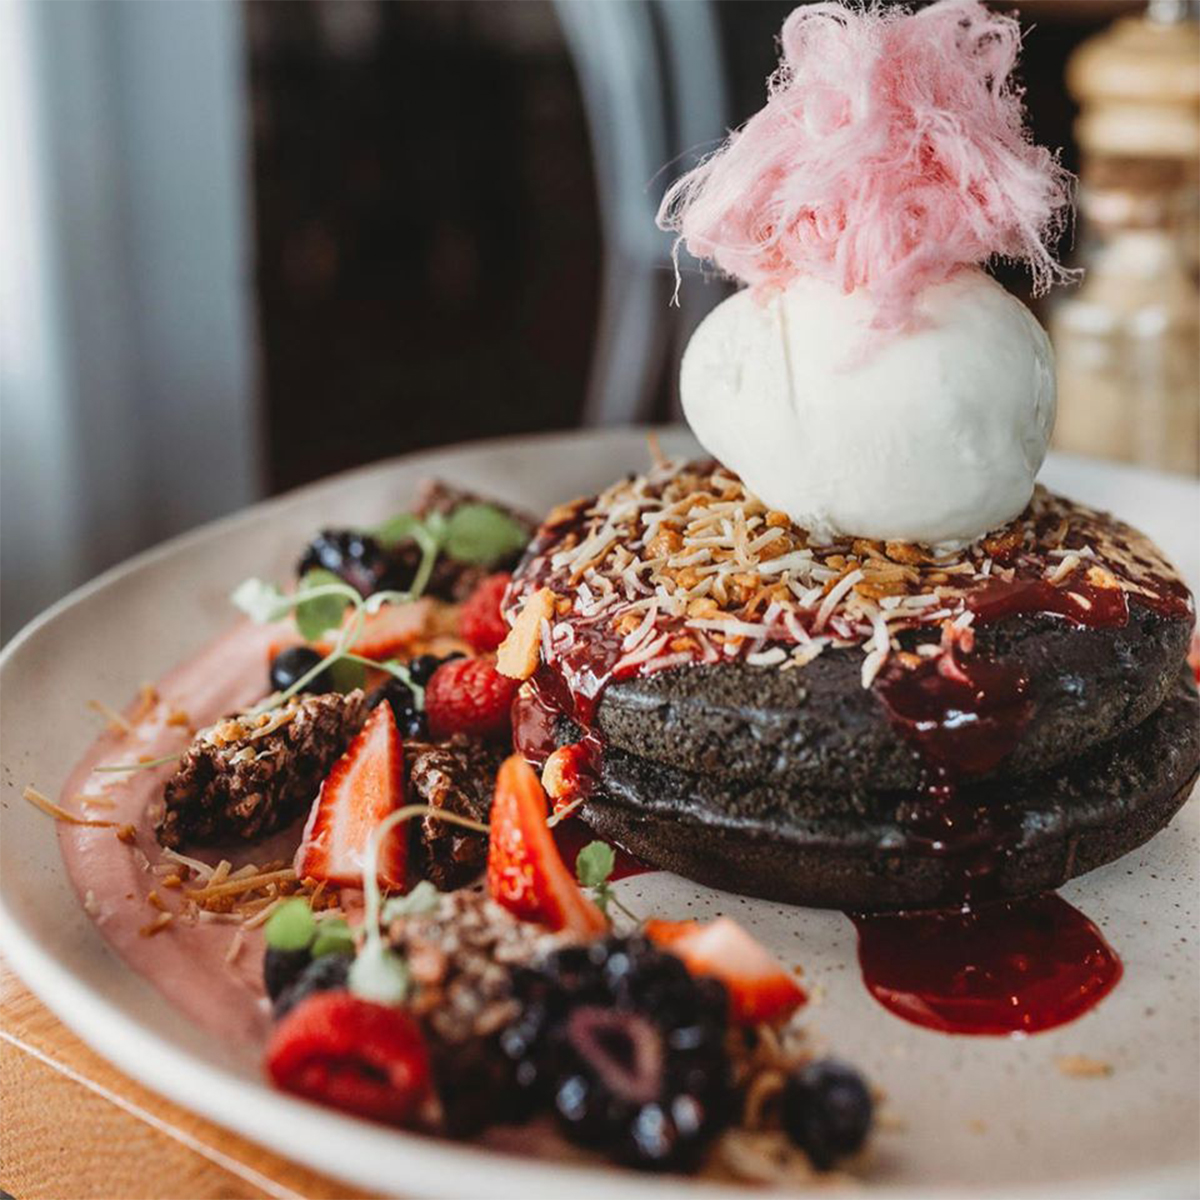 black pancakes topped with ice cream and raspberry sauce